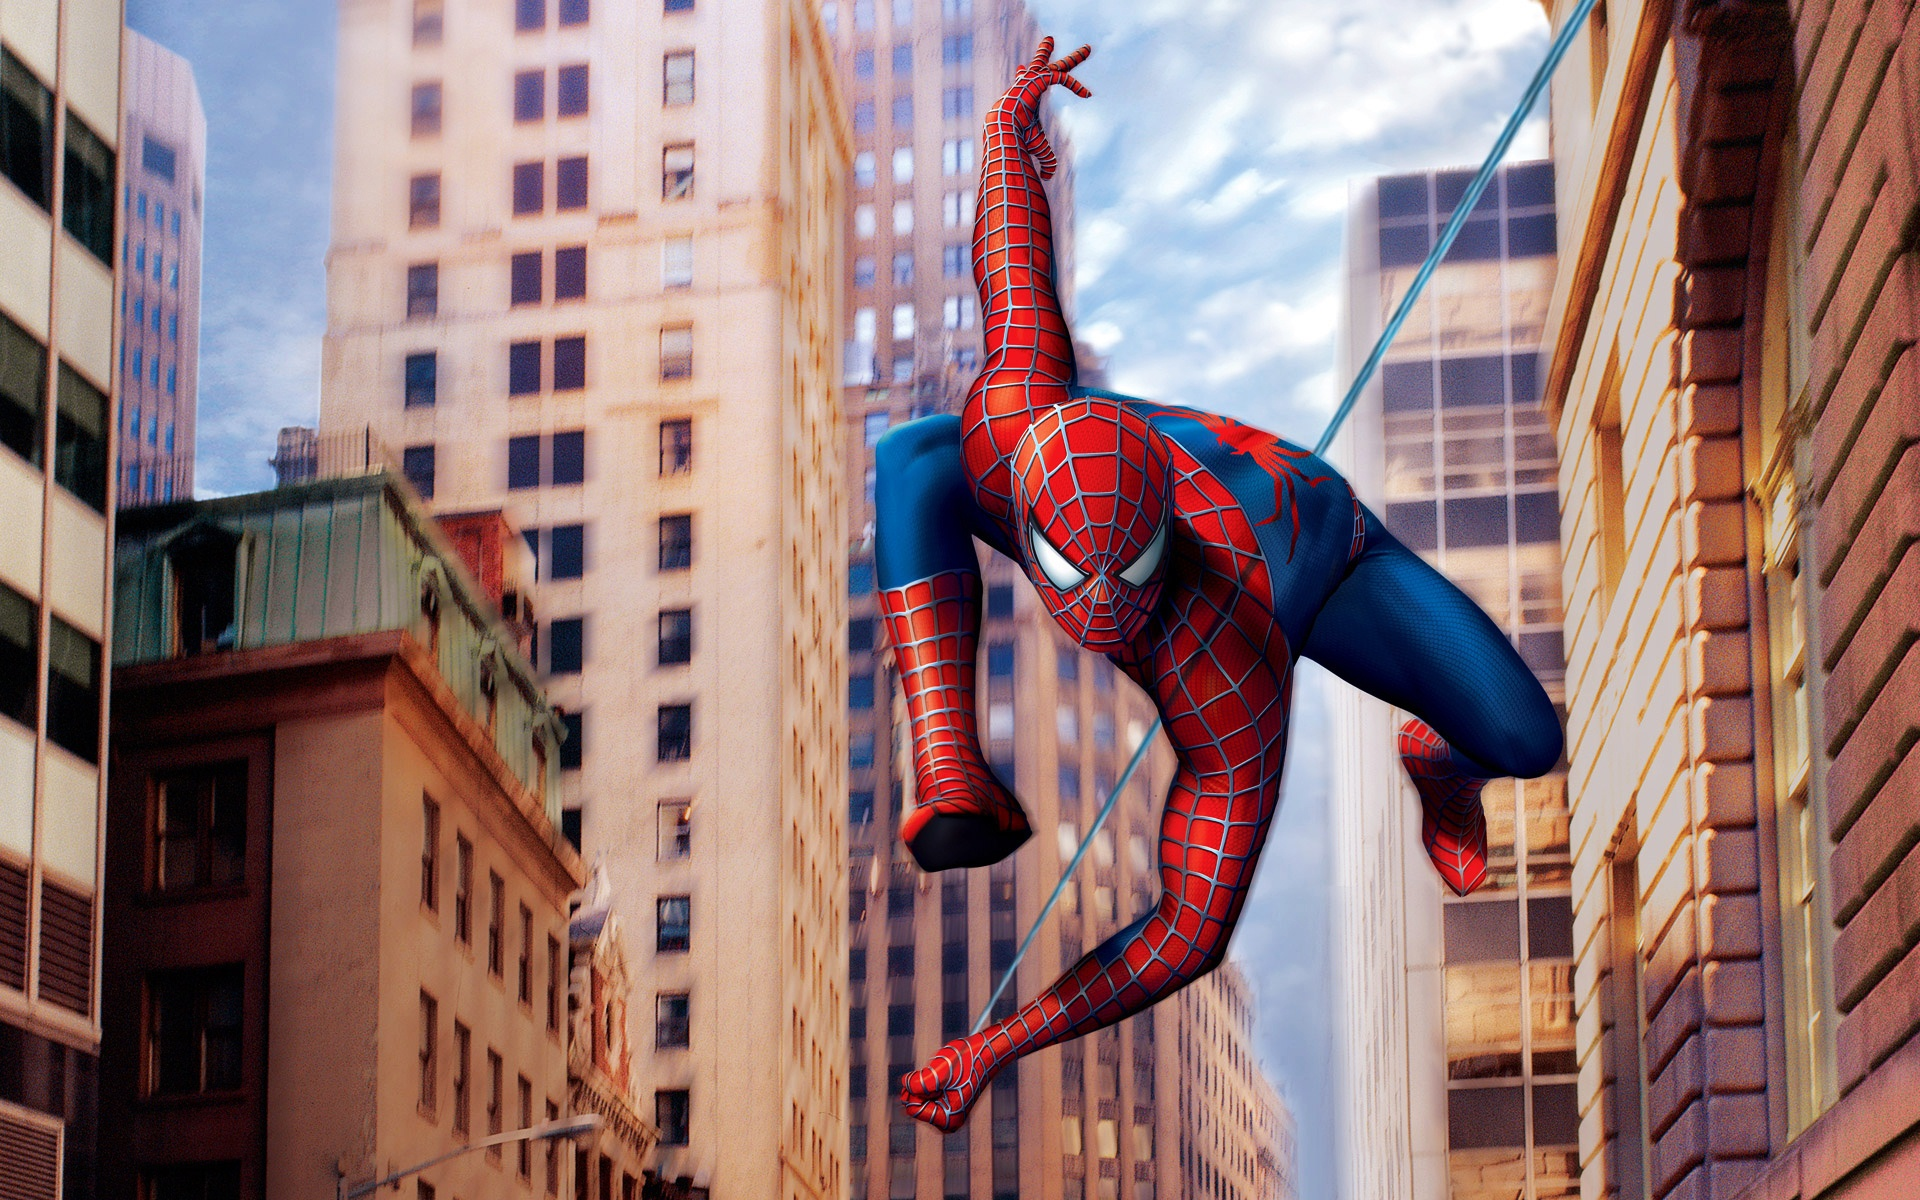 spiderman: wallpapers, photos and desktop backgrounds up to 8k